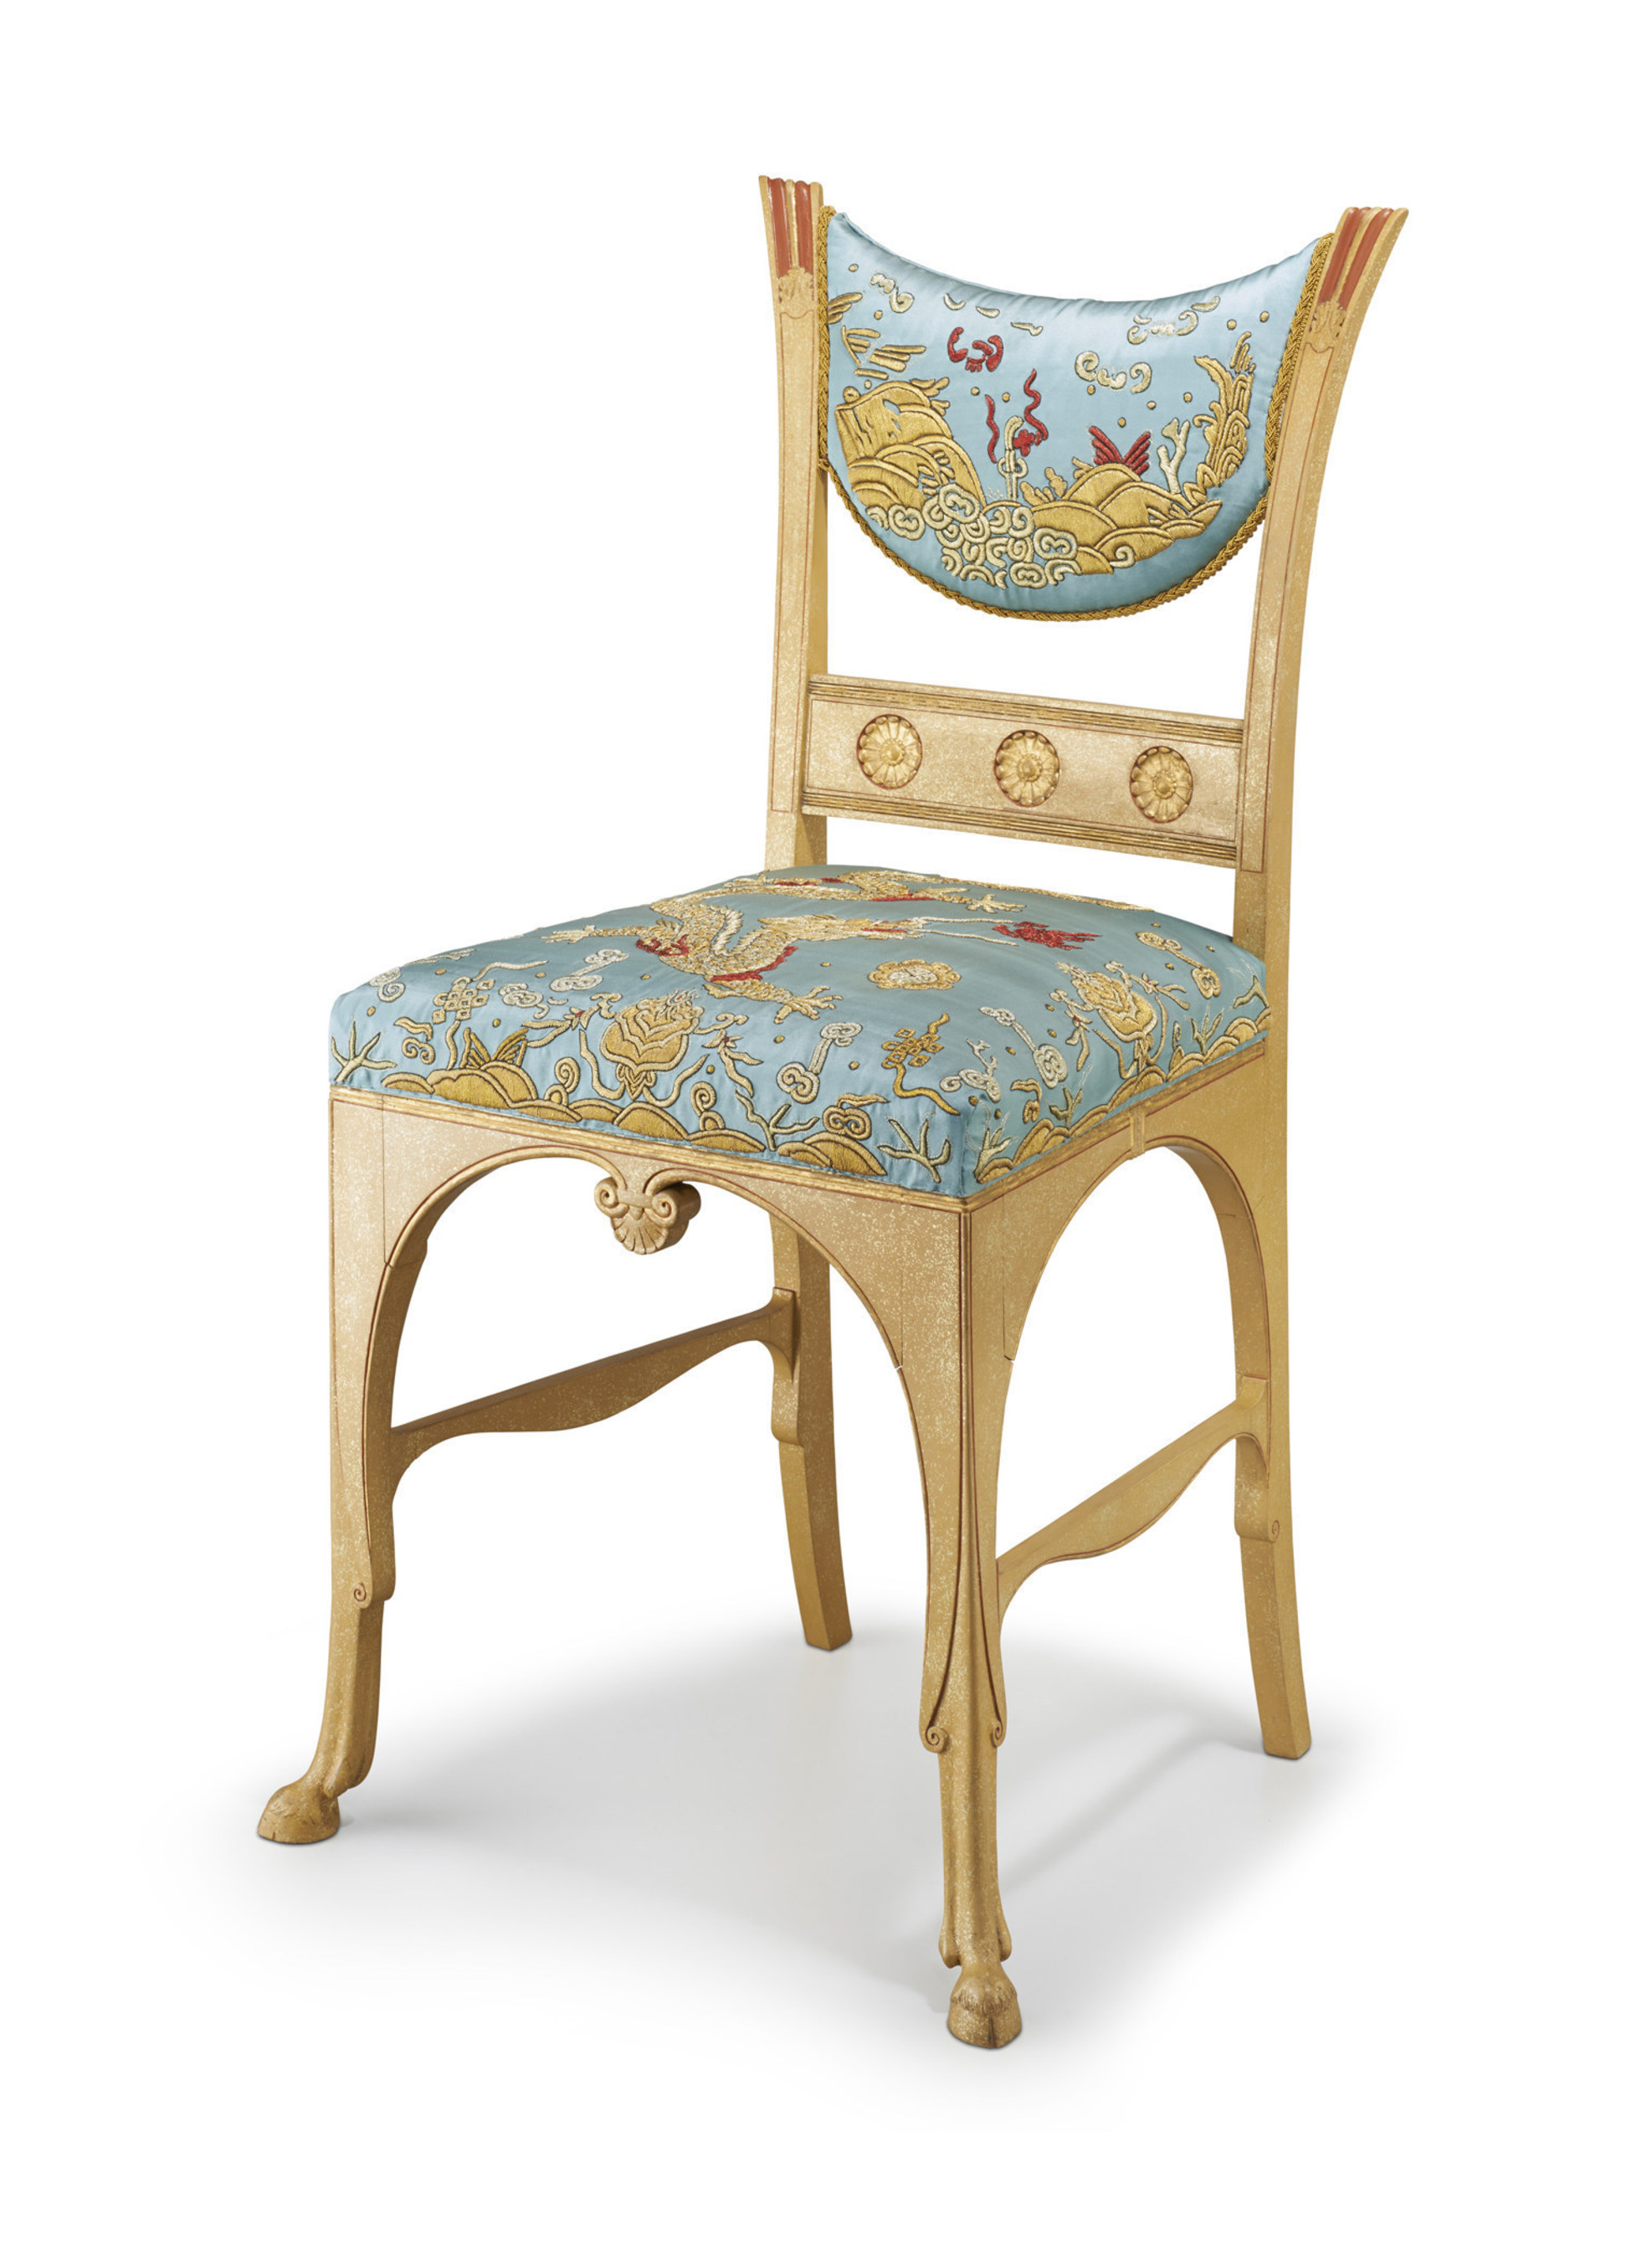 "Associated Artists, LLC. ""Pompeian"" side chair. Herter Brothers. New York c. 1880. Painted and gilt-flecked maple with upholstered seats. Probably commissioned for J. Piermont Morgan's lavish Madison Avenue mansion."